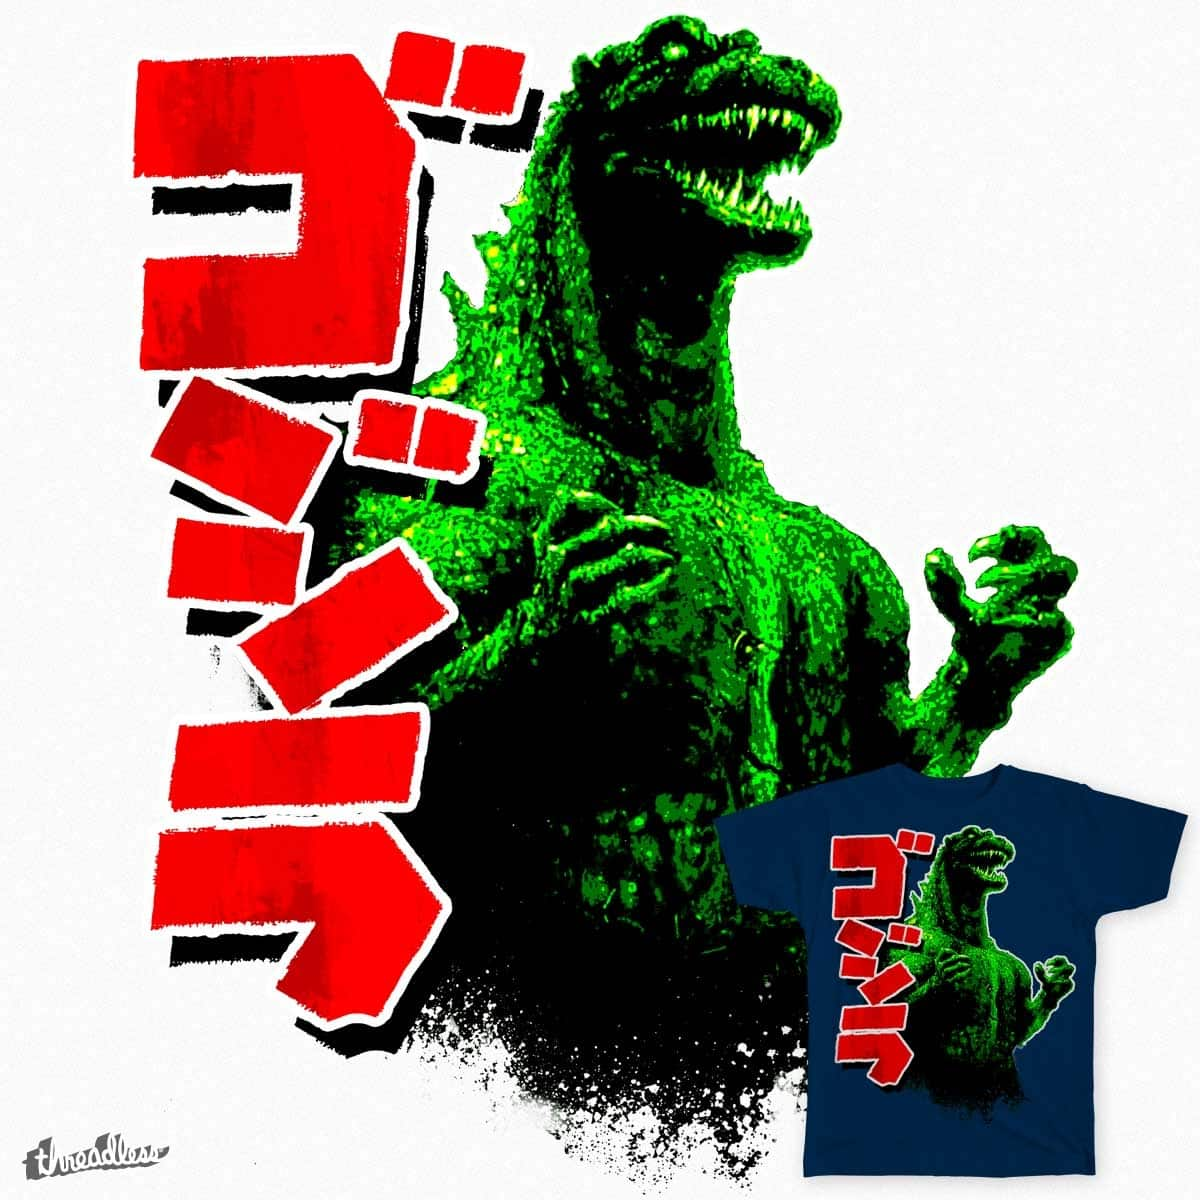 Godzilla!! by leea1968 on Threadless